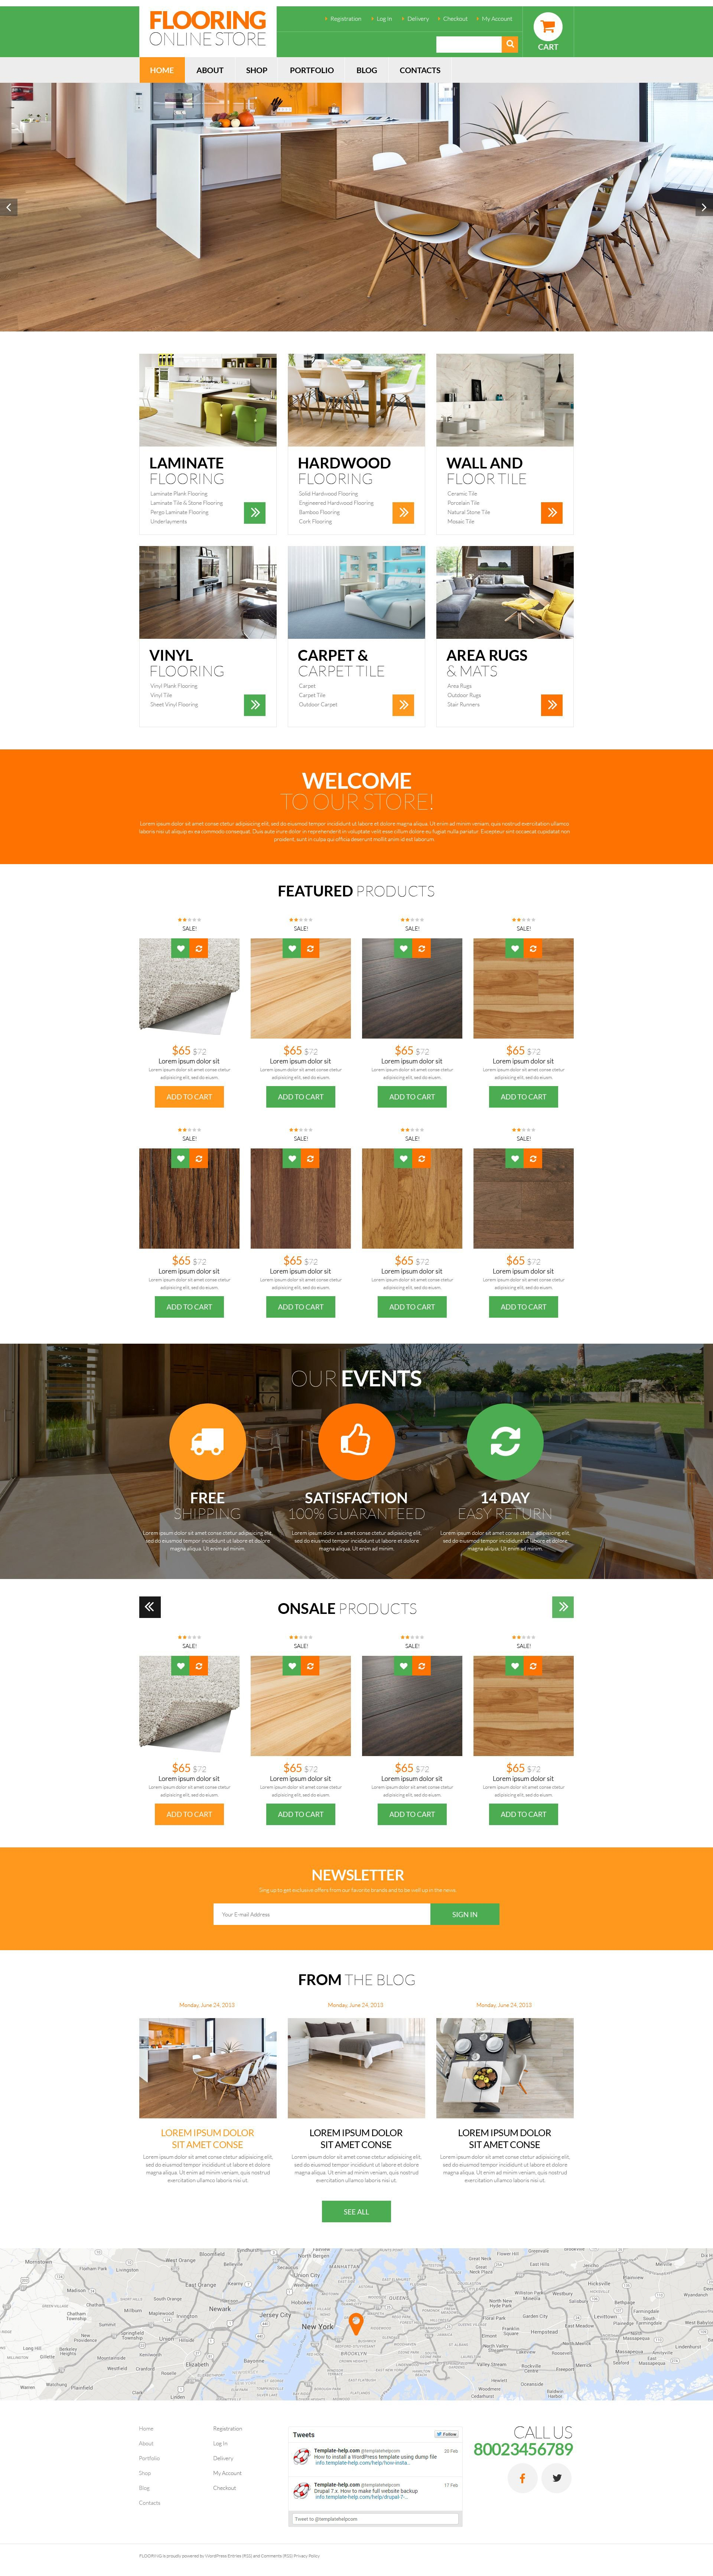 The Floor Flooring Online Store WooCommerce Design 53306, one of the best WooCommerce themes of its kind (art & photography, most popular), also known as floor flooring online store WooCommerce template, shop WooCommerce template, laminat WooCommerce template, wood WooCommerce template, carpet WooCommerce template, area WooCommerce template, rugs WooCommerce template, cork WooCommerce template, overhaul WooCommerce template, maintenance WooCommerce template, shopping cart and related with floor flooring online store, shop, laminat, wood, carpet, area, rugs, cork, overhaul, maintenance, shopping cart, etc.